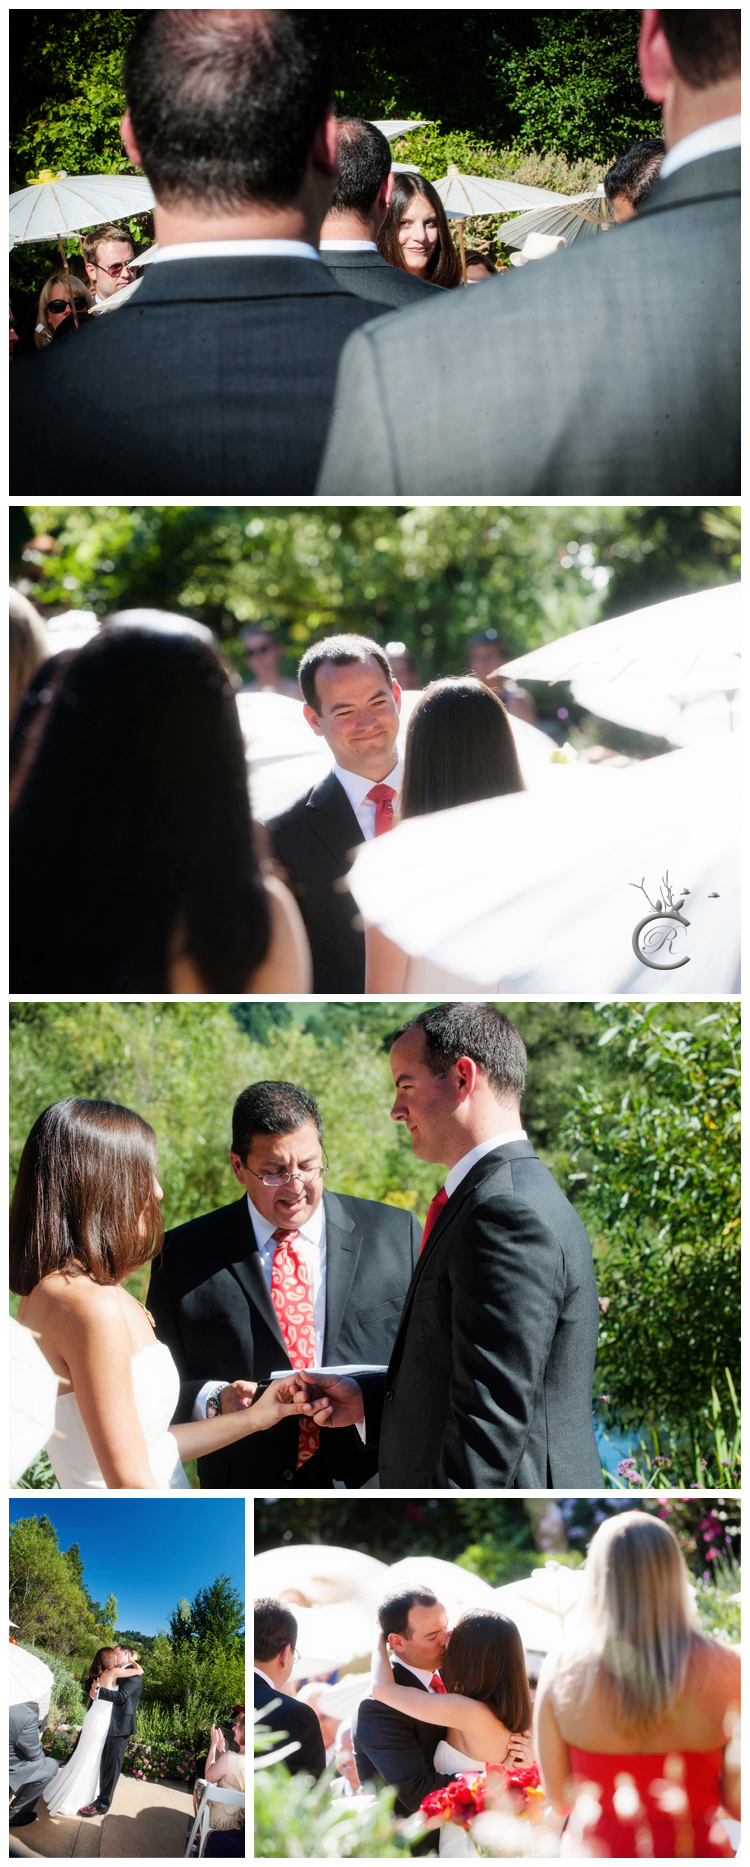 Wedding Ceremony at Hans Fahden Winery • Carrie Richards Photography